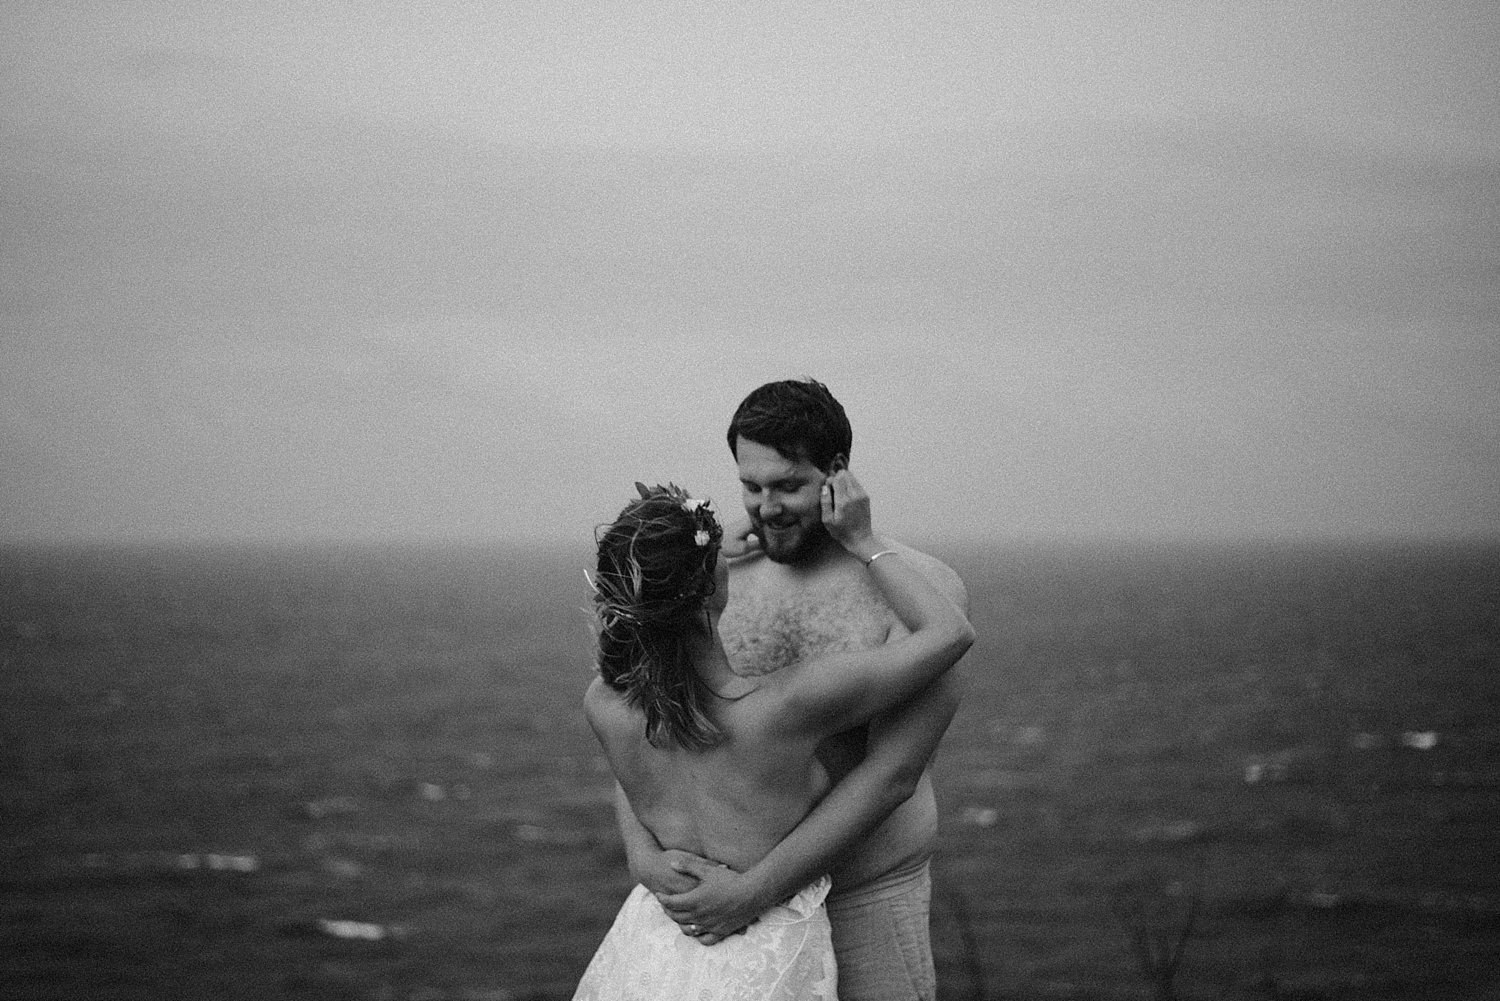 bride and groom in an intimate embrace